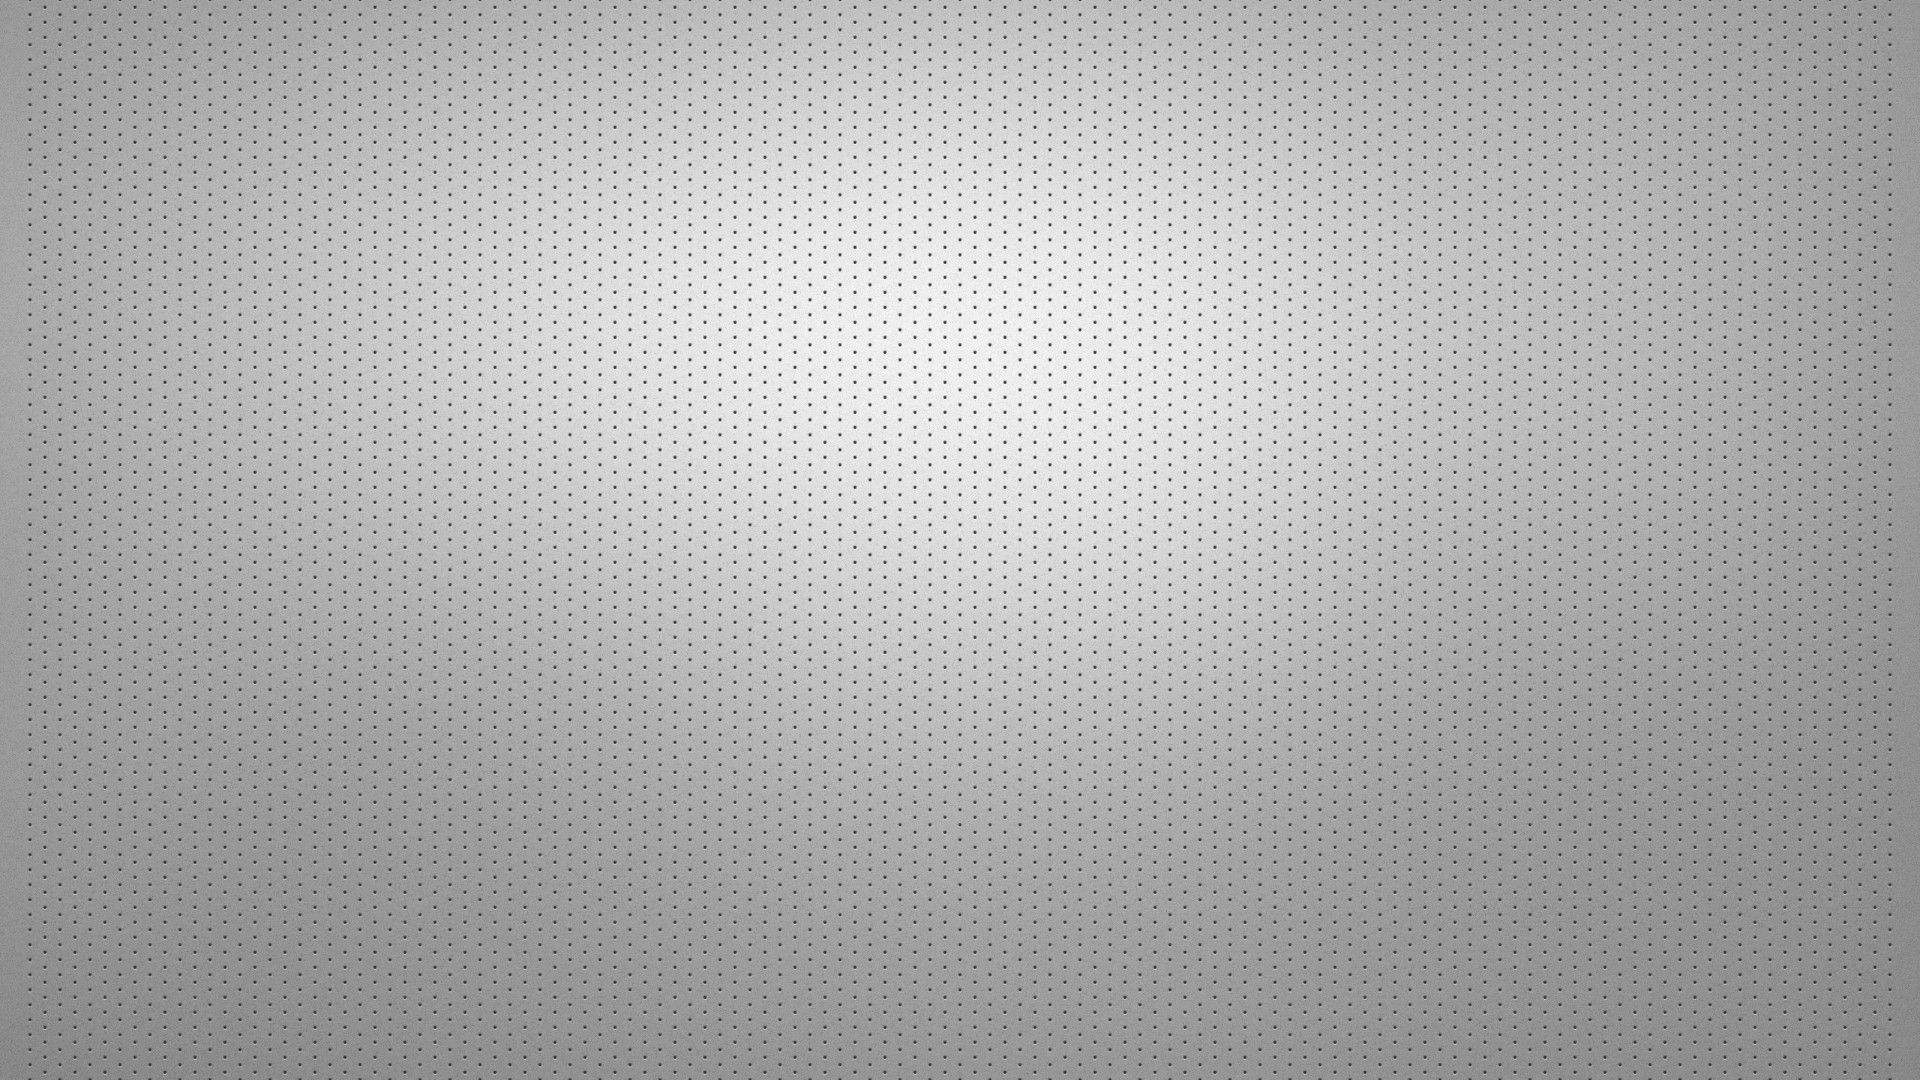 HD Silver Backgrounds Best HD Wallpapers Pure white